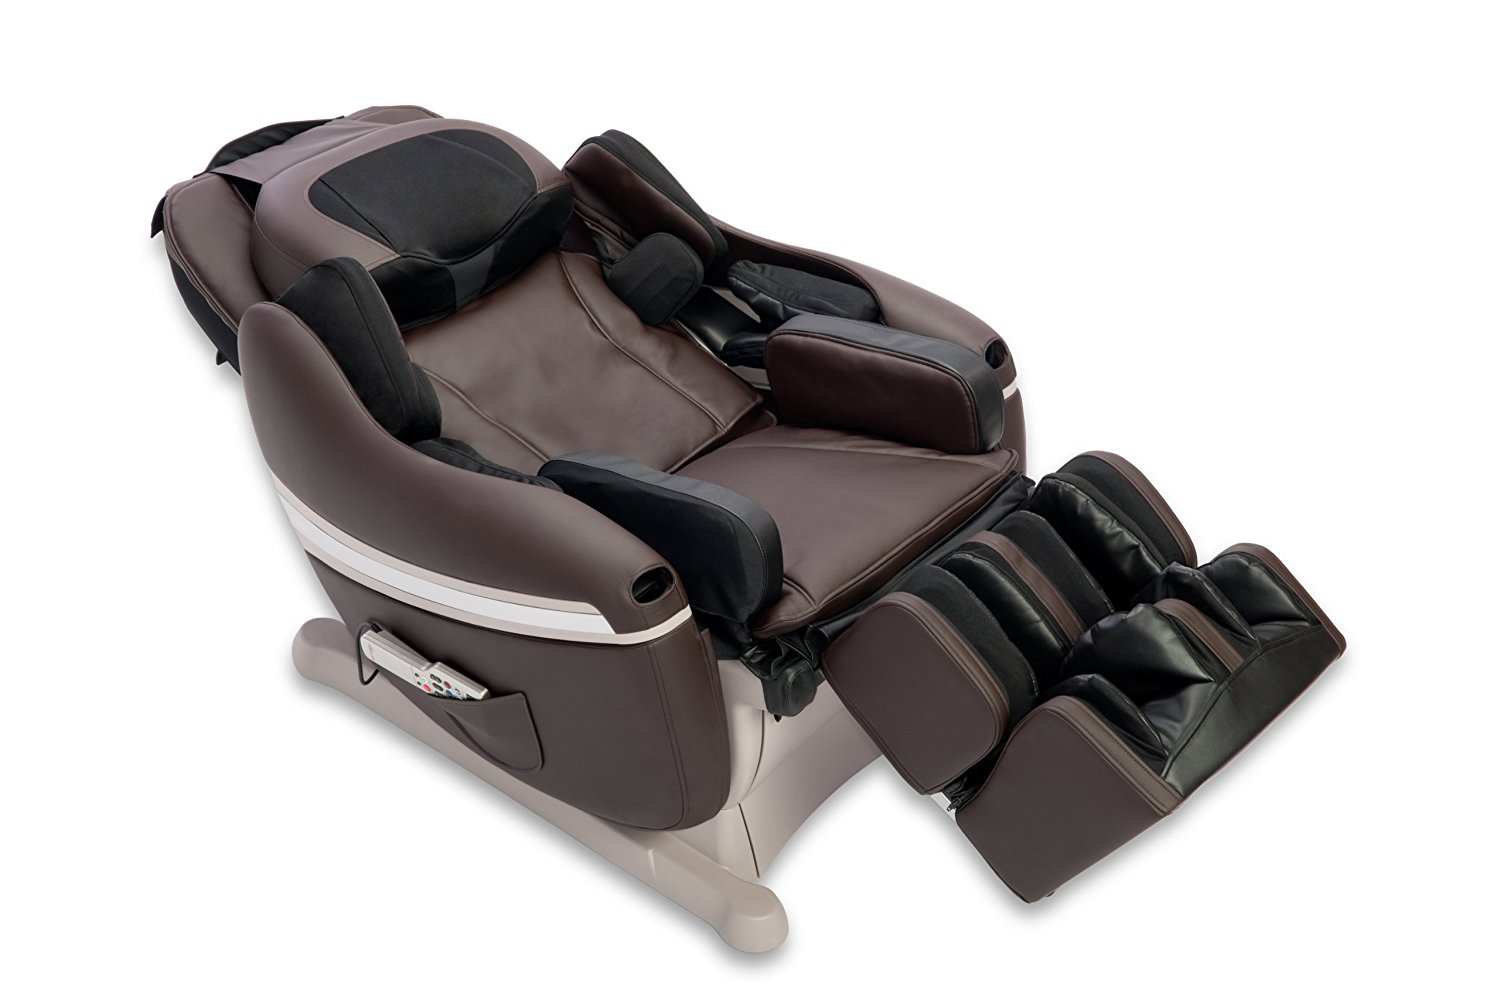 massage chair repair service technician wheelchair bound icd 10 electric recliner and smart choice